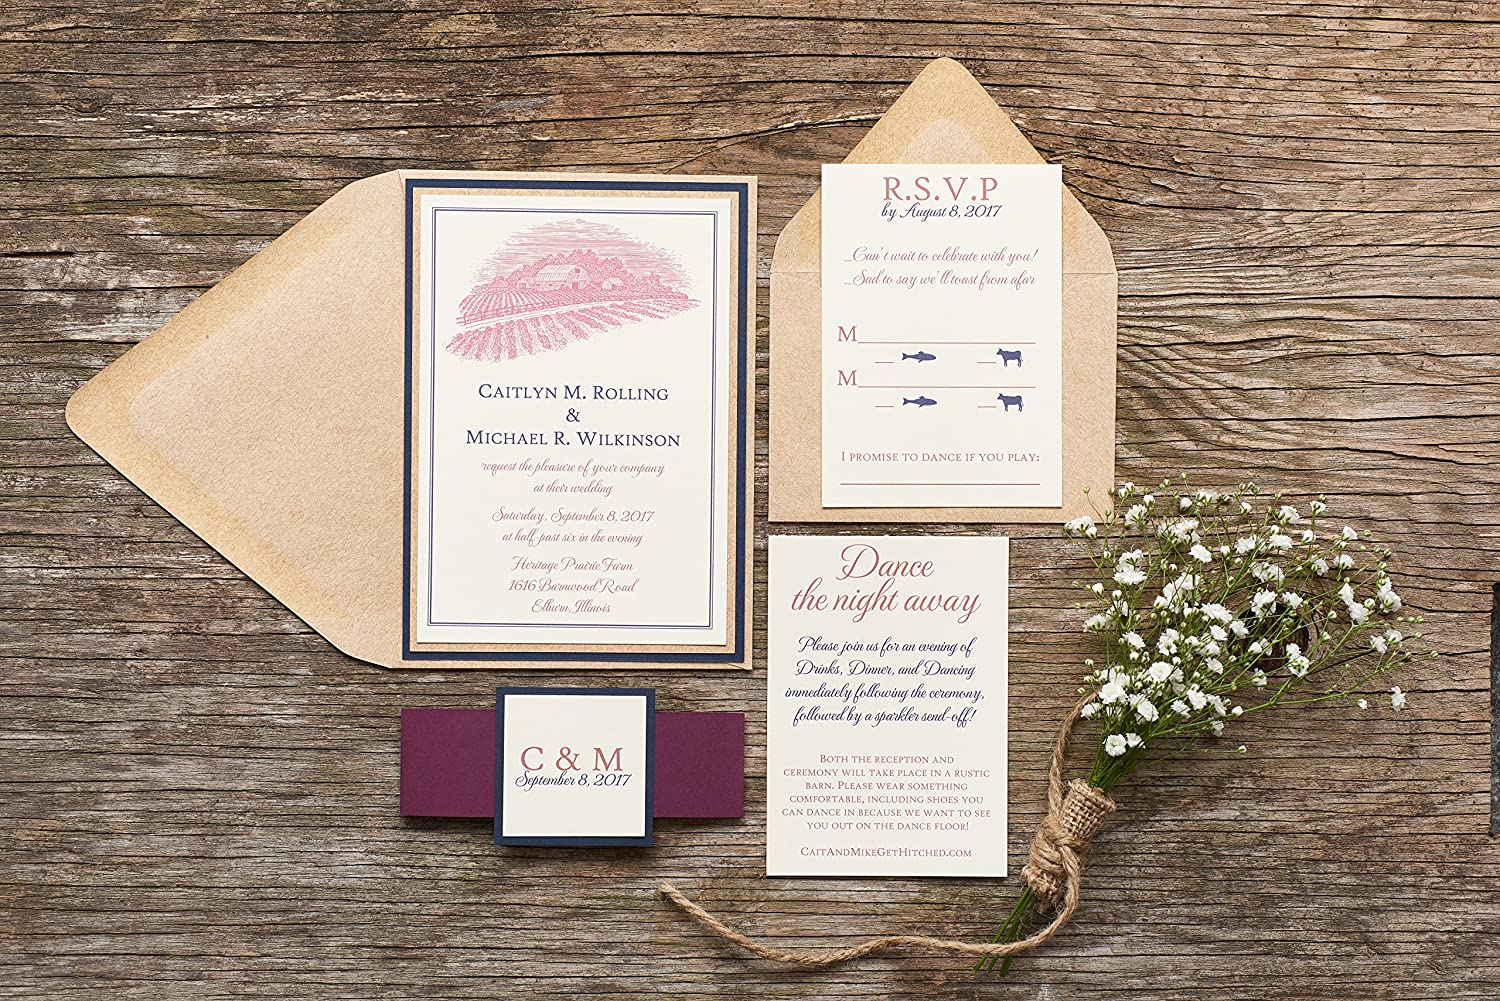 Amazoncom Rustic Barn Wedding Invitation Red White And Blue